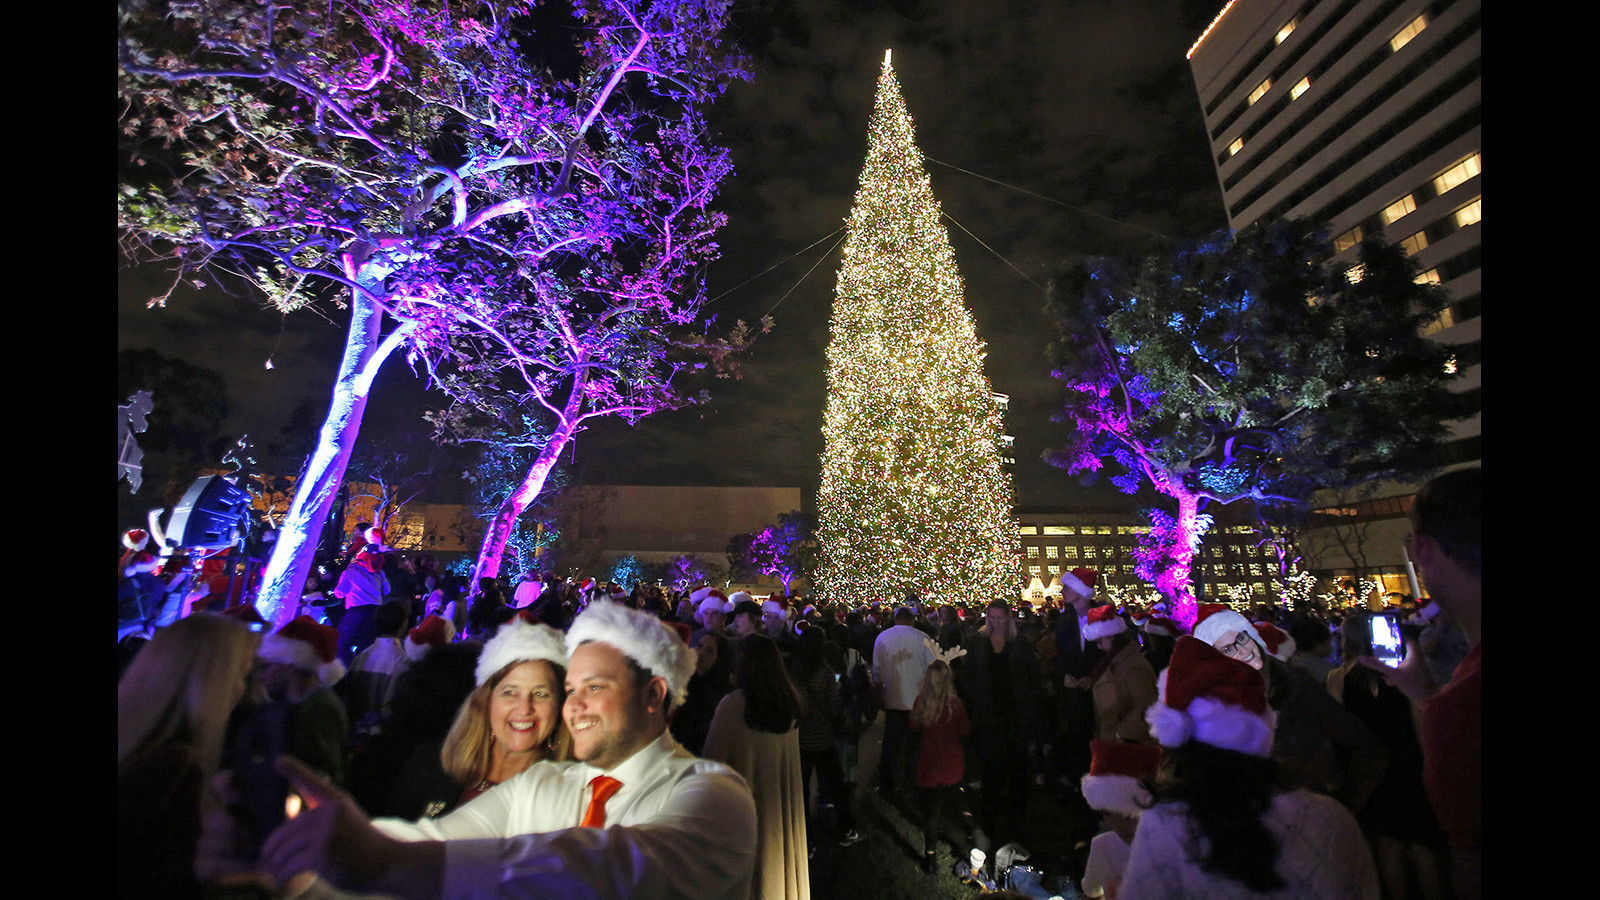 photo gallery south coast plazas 36th annual tree lighting daily pilot - Christmas Tree Lighting